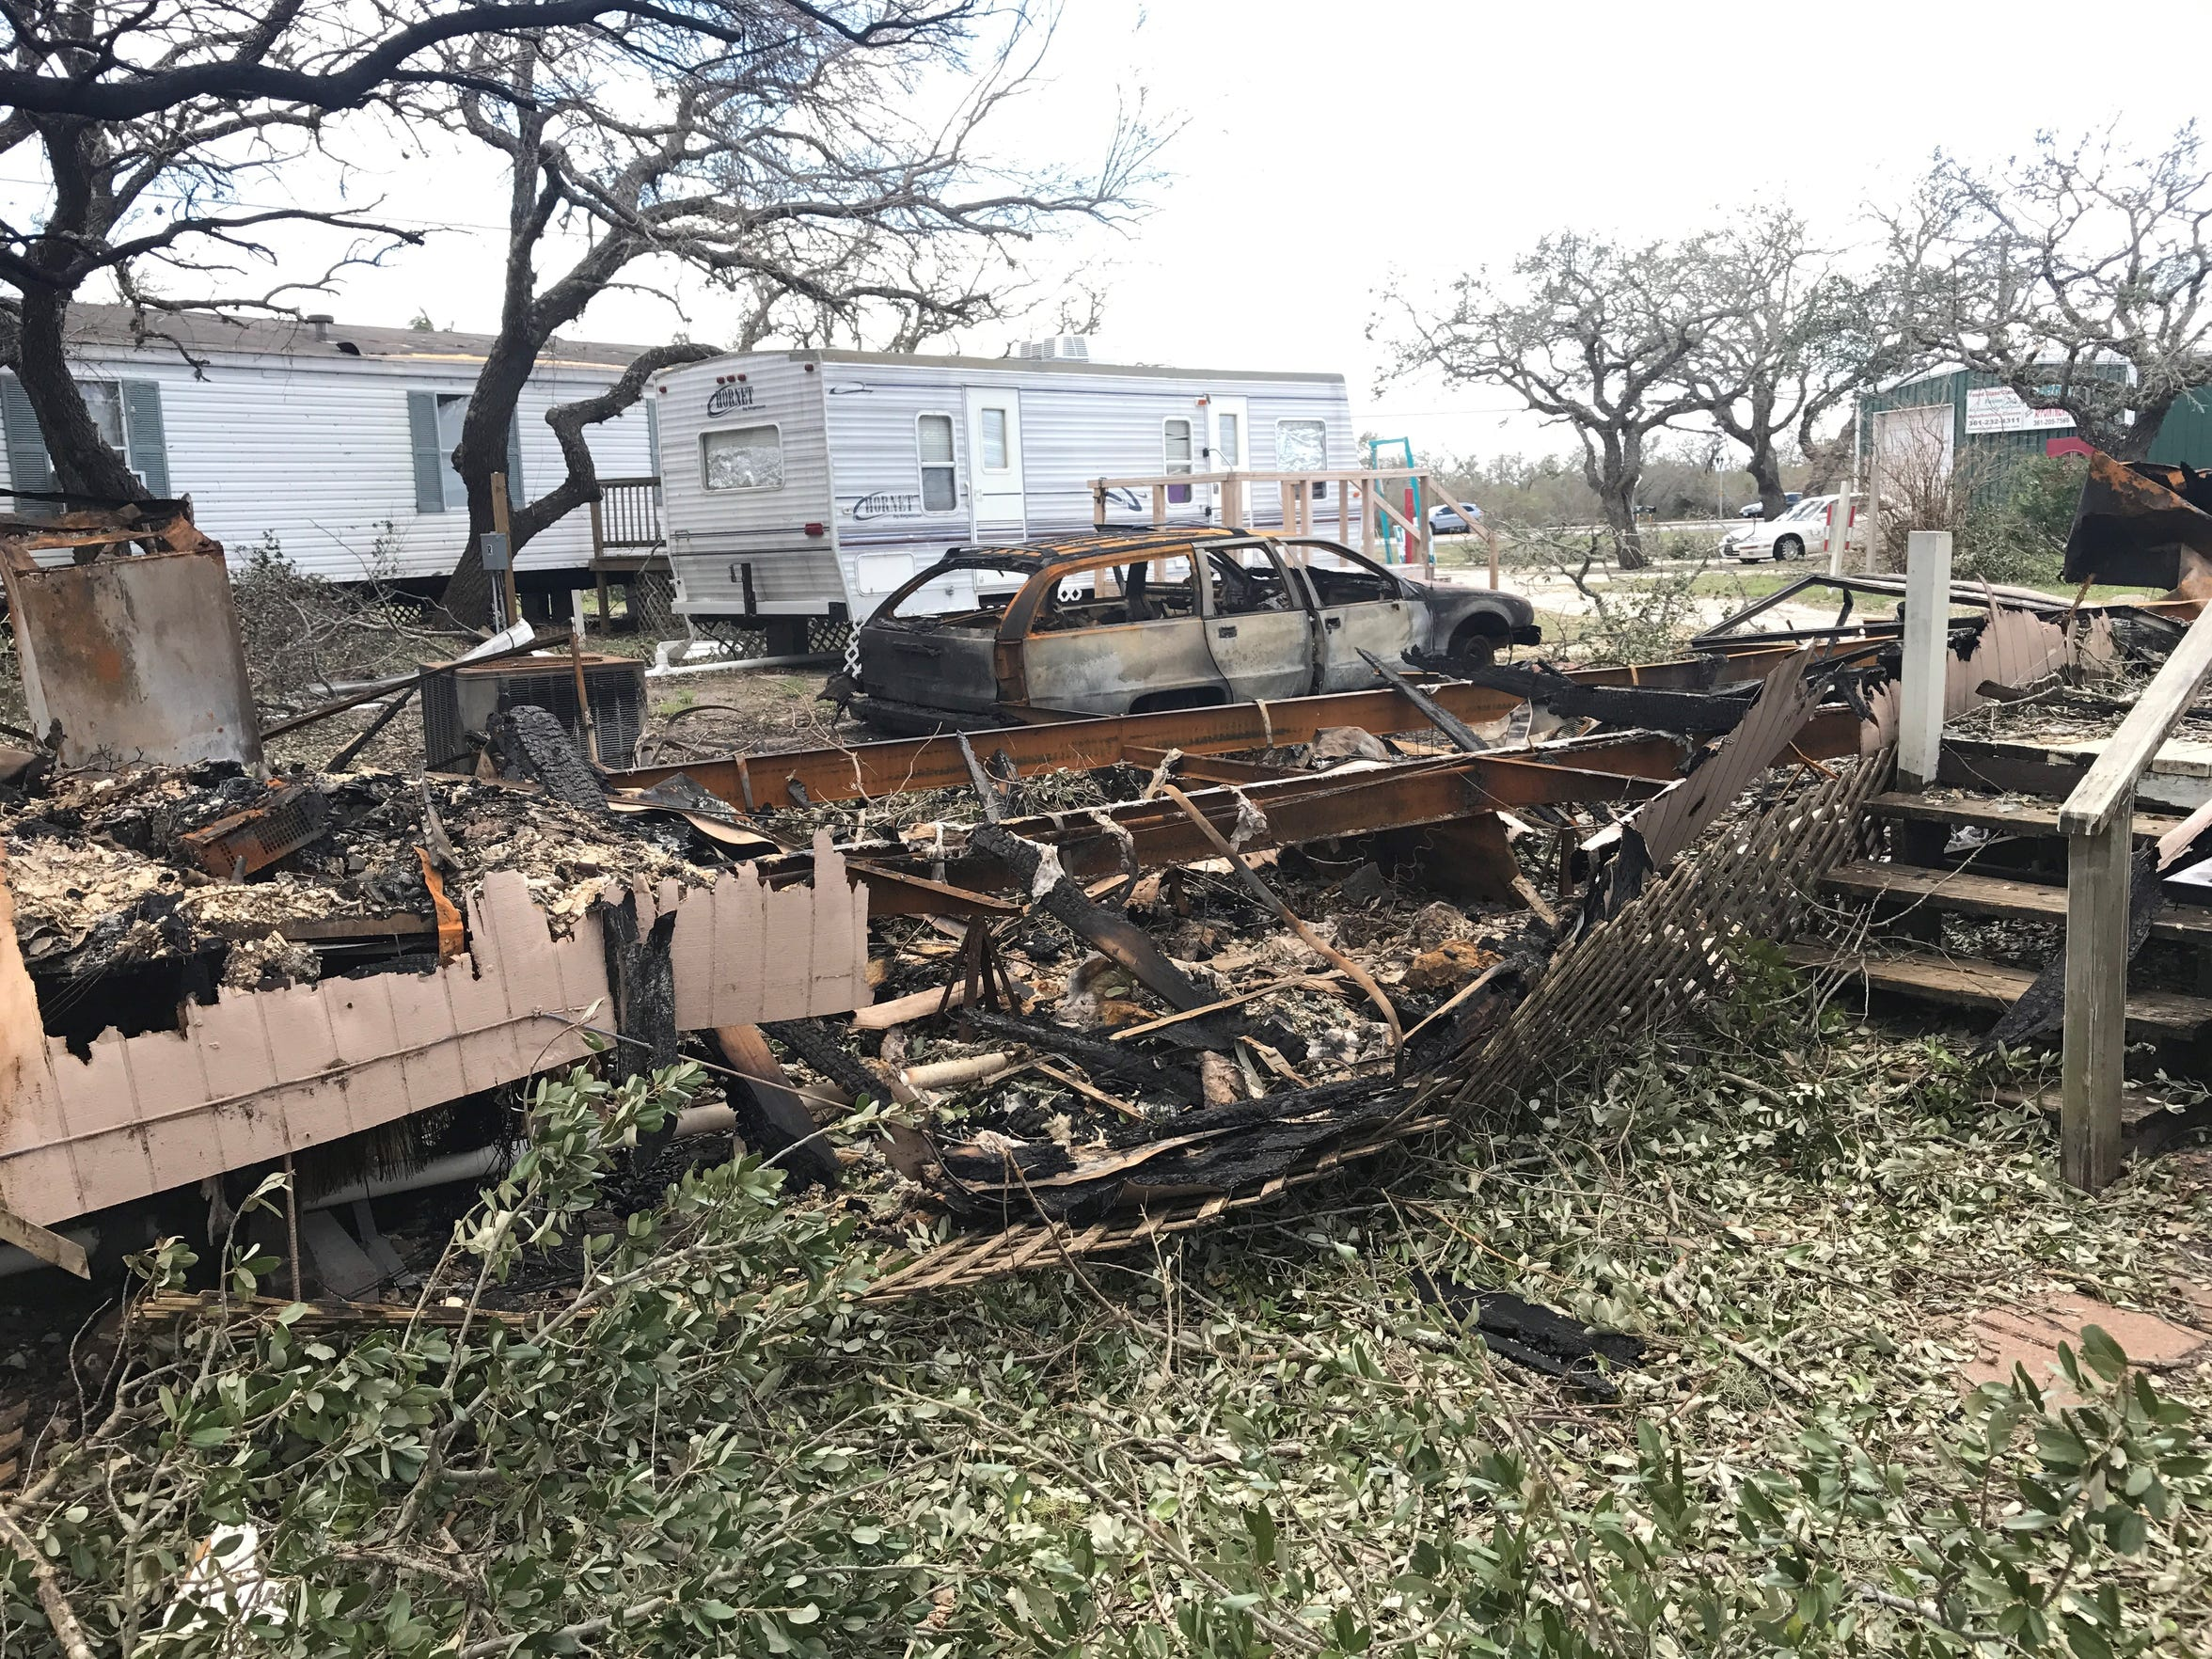 This trailer was destroyed in a fire shortly after Hurricane Harvey made landfall on Aug. 25, killing 39-year-old Arthur Adams. The structure, located along Farm-to-Market Road 3036 in Rockport, caught fire for an as-yet-unknown reason. Firefighters were unable to respond to the blaze due to the dangerous weather conditions at the time. Adams was the first confirmed fatality from Hurricane Harvey.